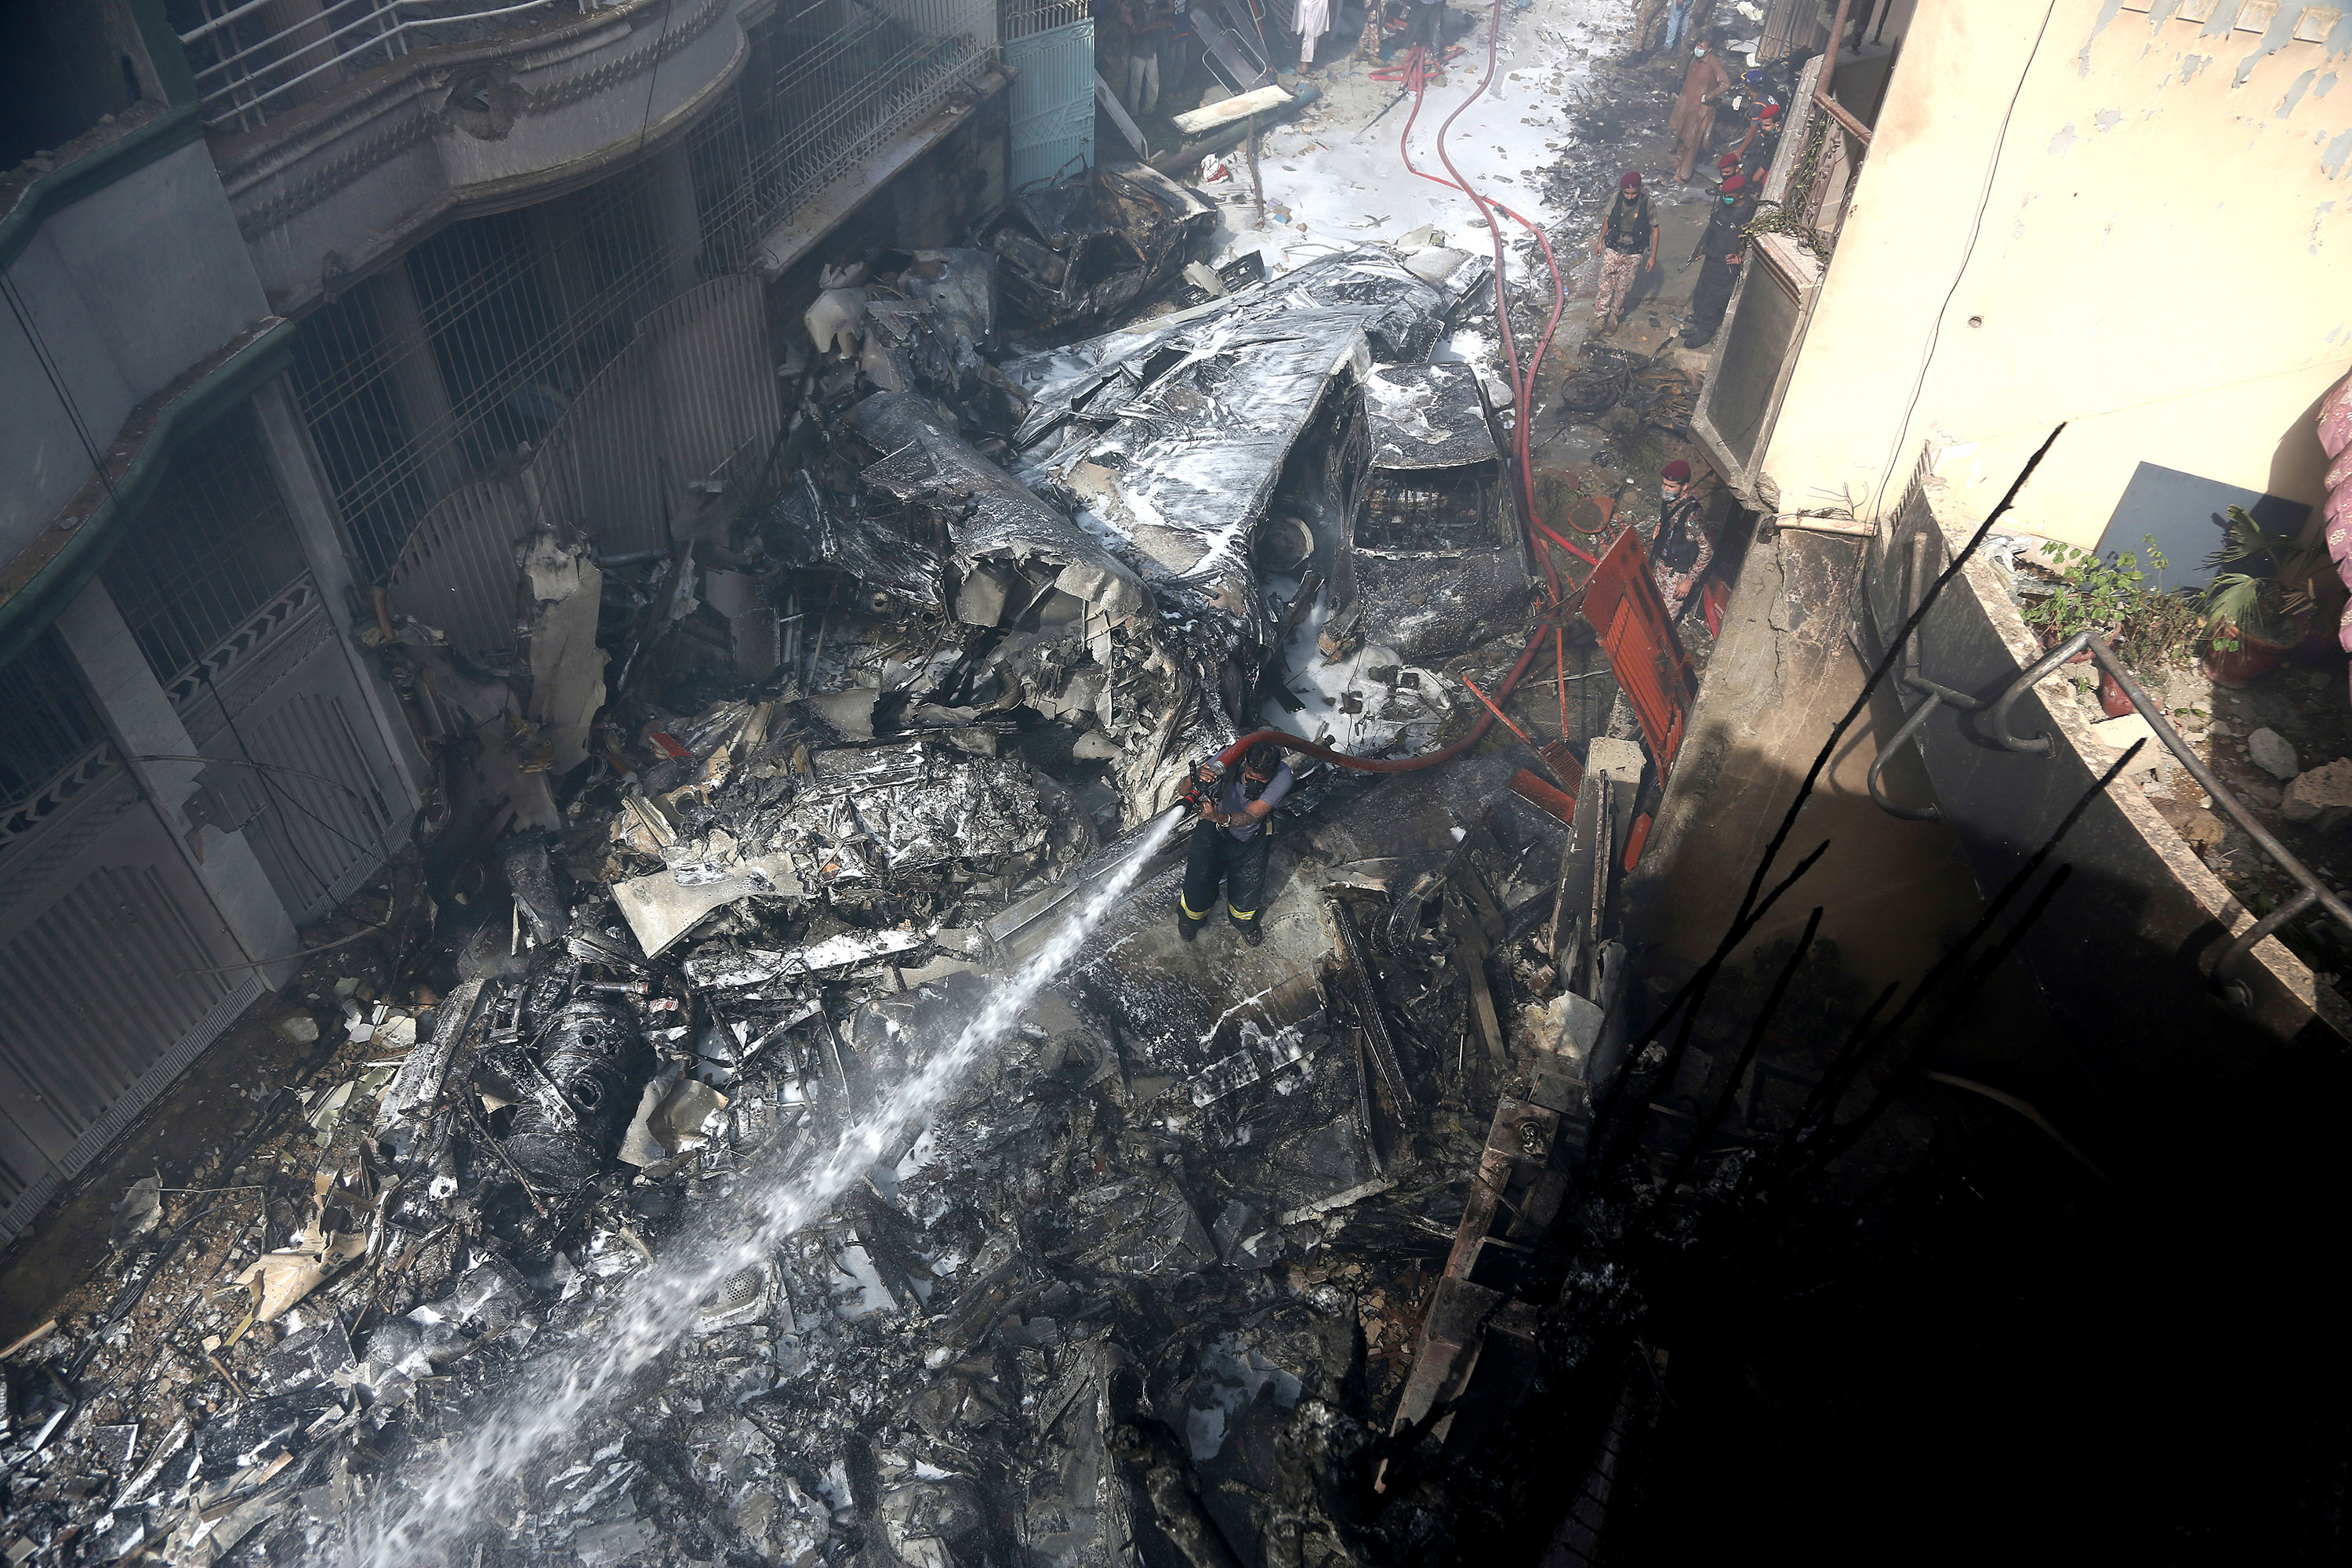 A member of a fire brigade tries to put out fire caused by a plane crash in Karachi, Pakistan, on May 22.